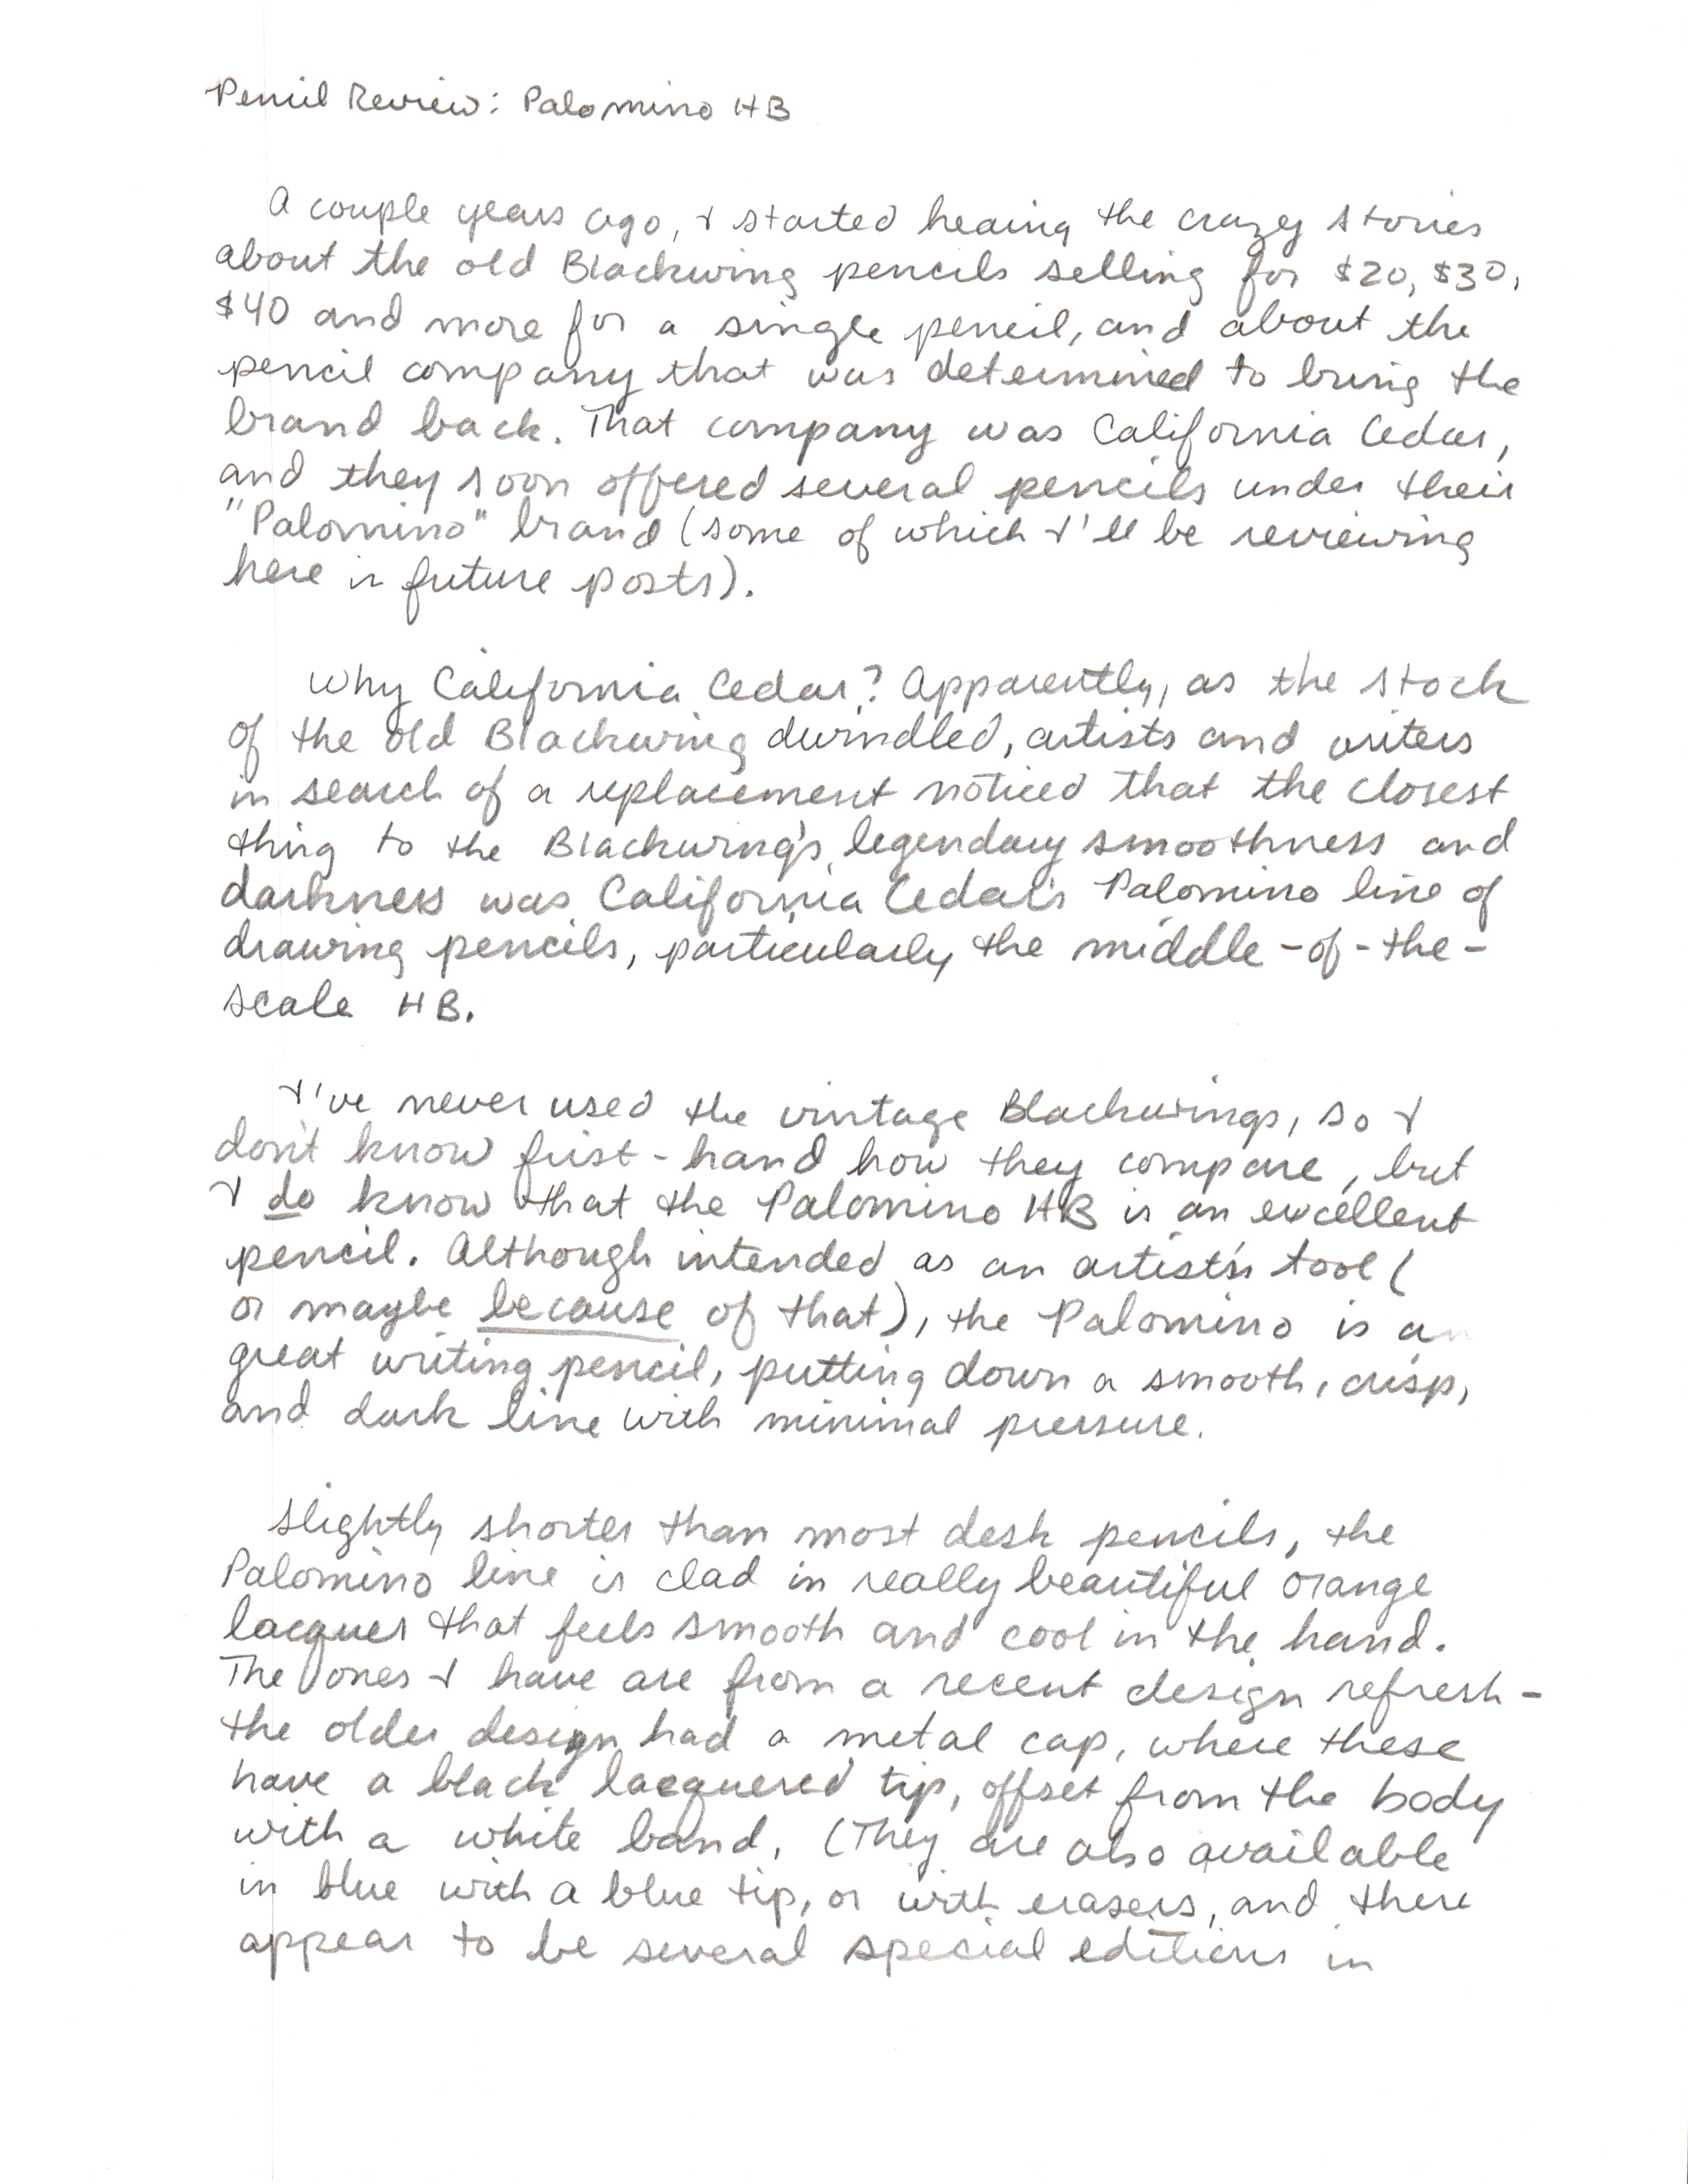 Palomino HB - Handwritten Review